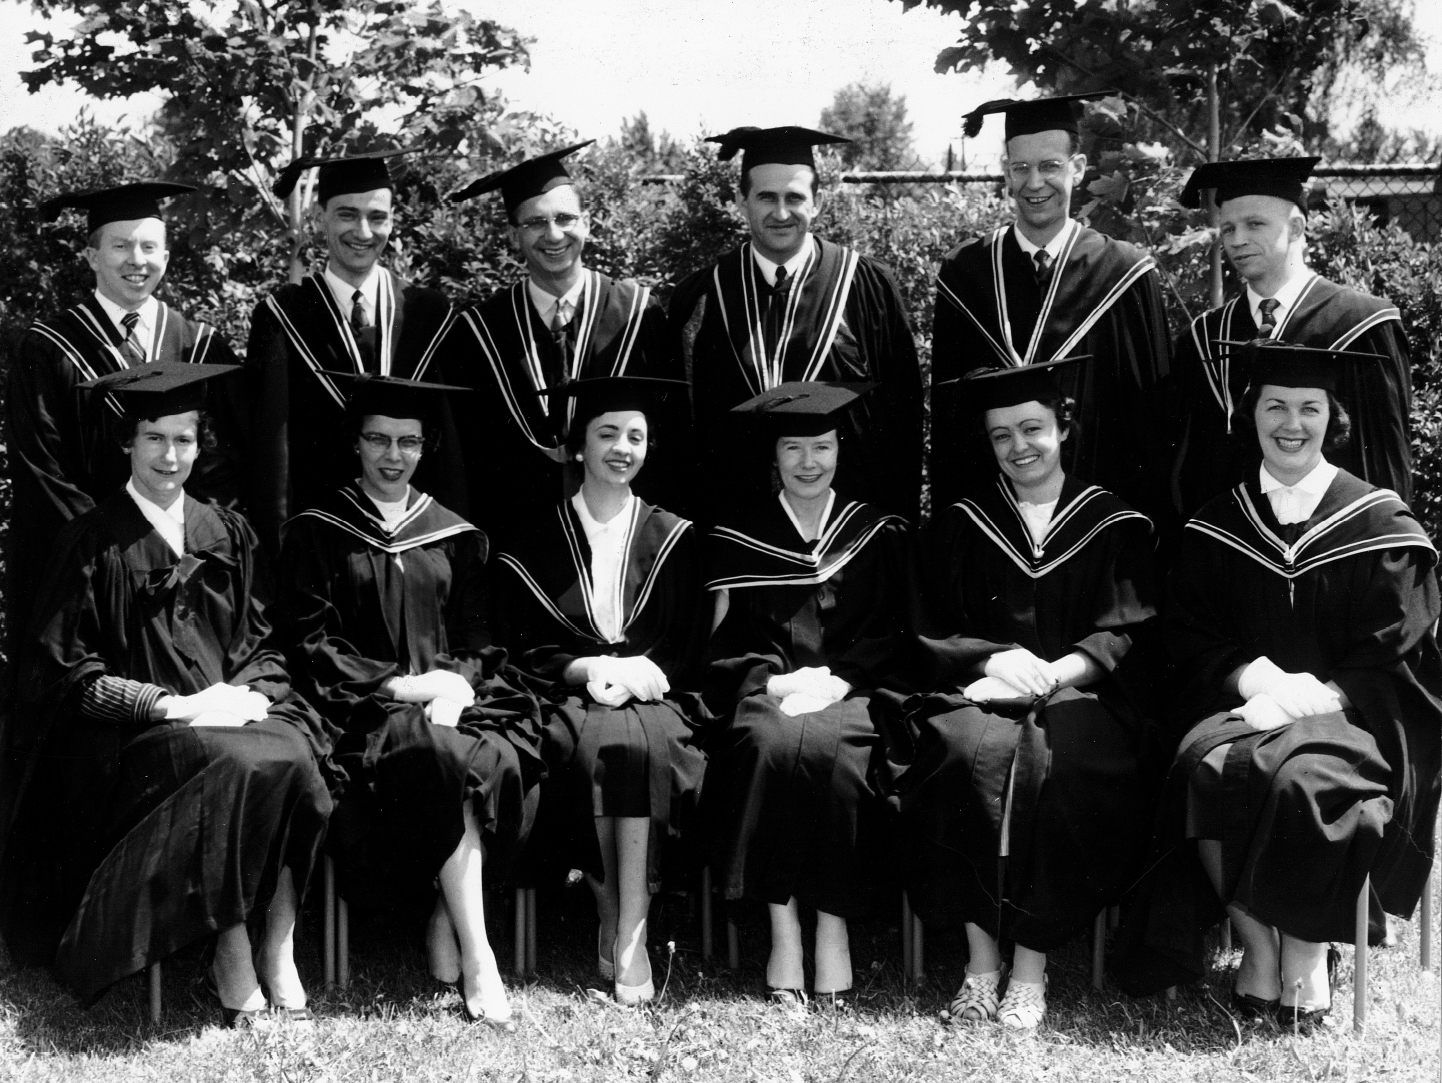 A photo of the graduating class of 1957 from the School of Social Work.